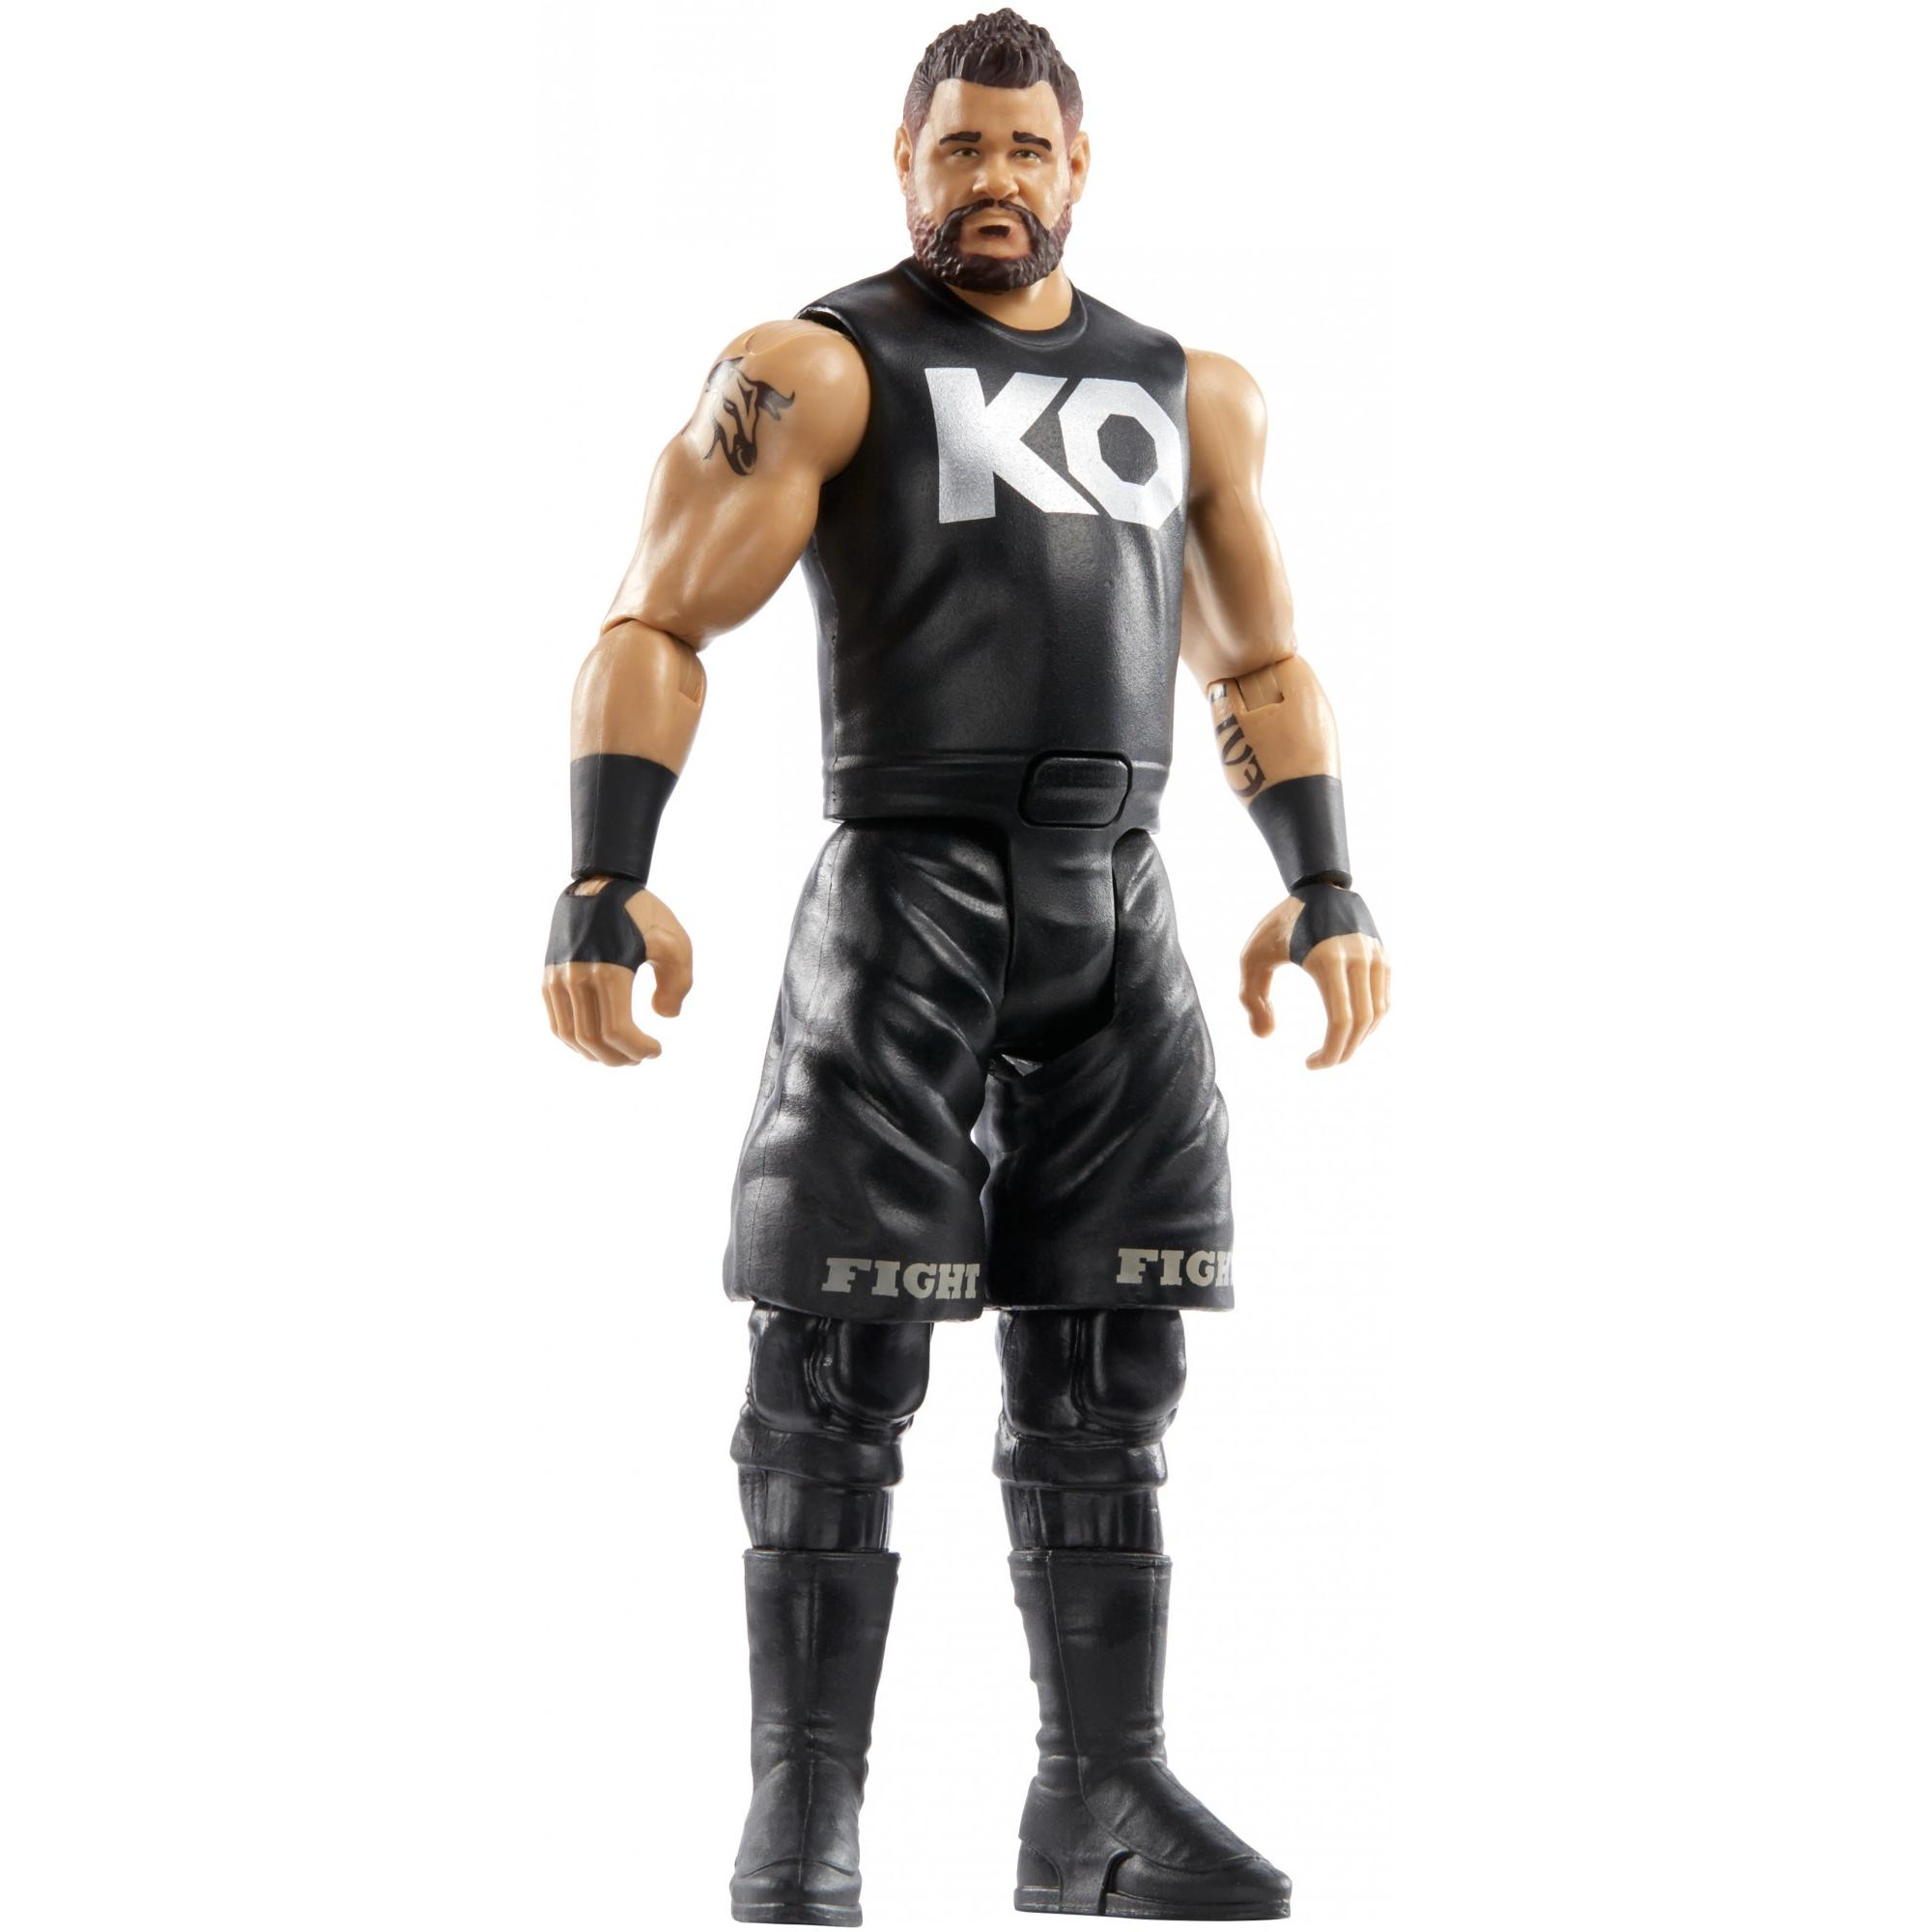 WWE Superstars Kevin Owens by Mattel